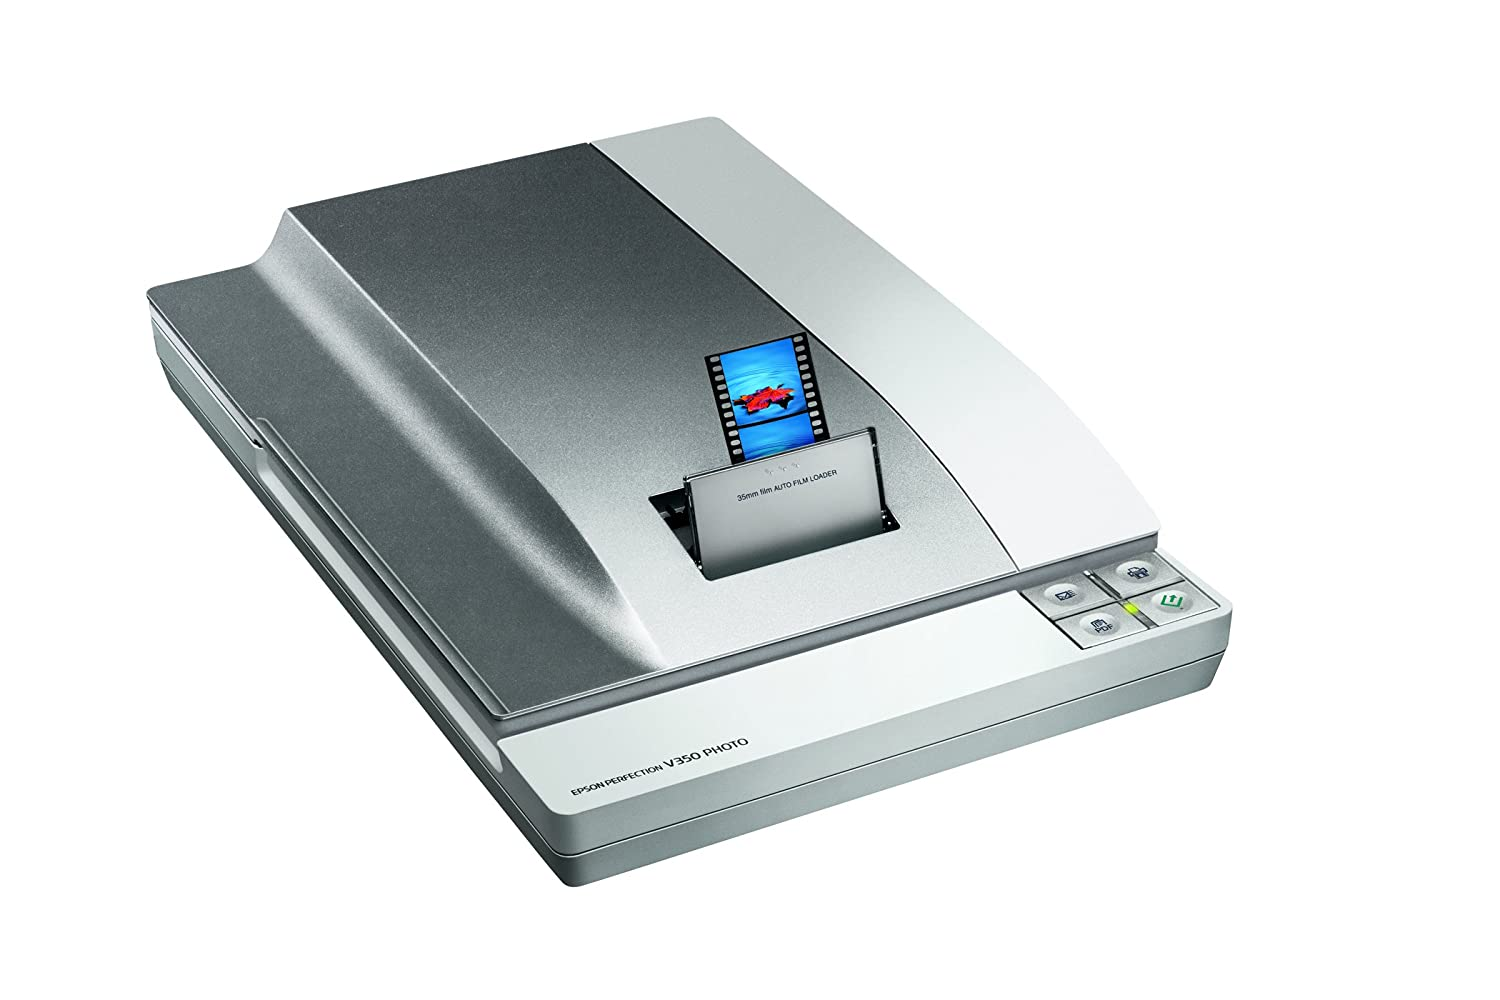 Epson Perfection V350 Driver Installation Without Using CD-RW